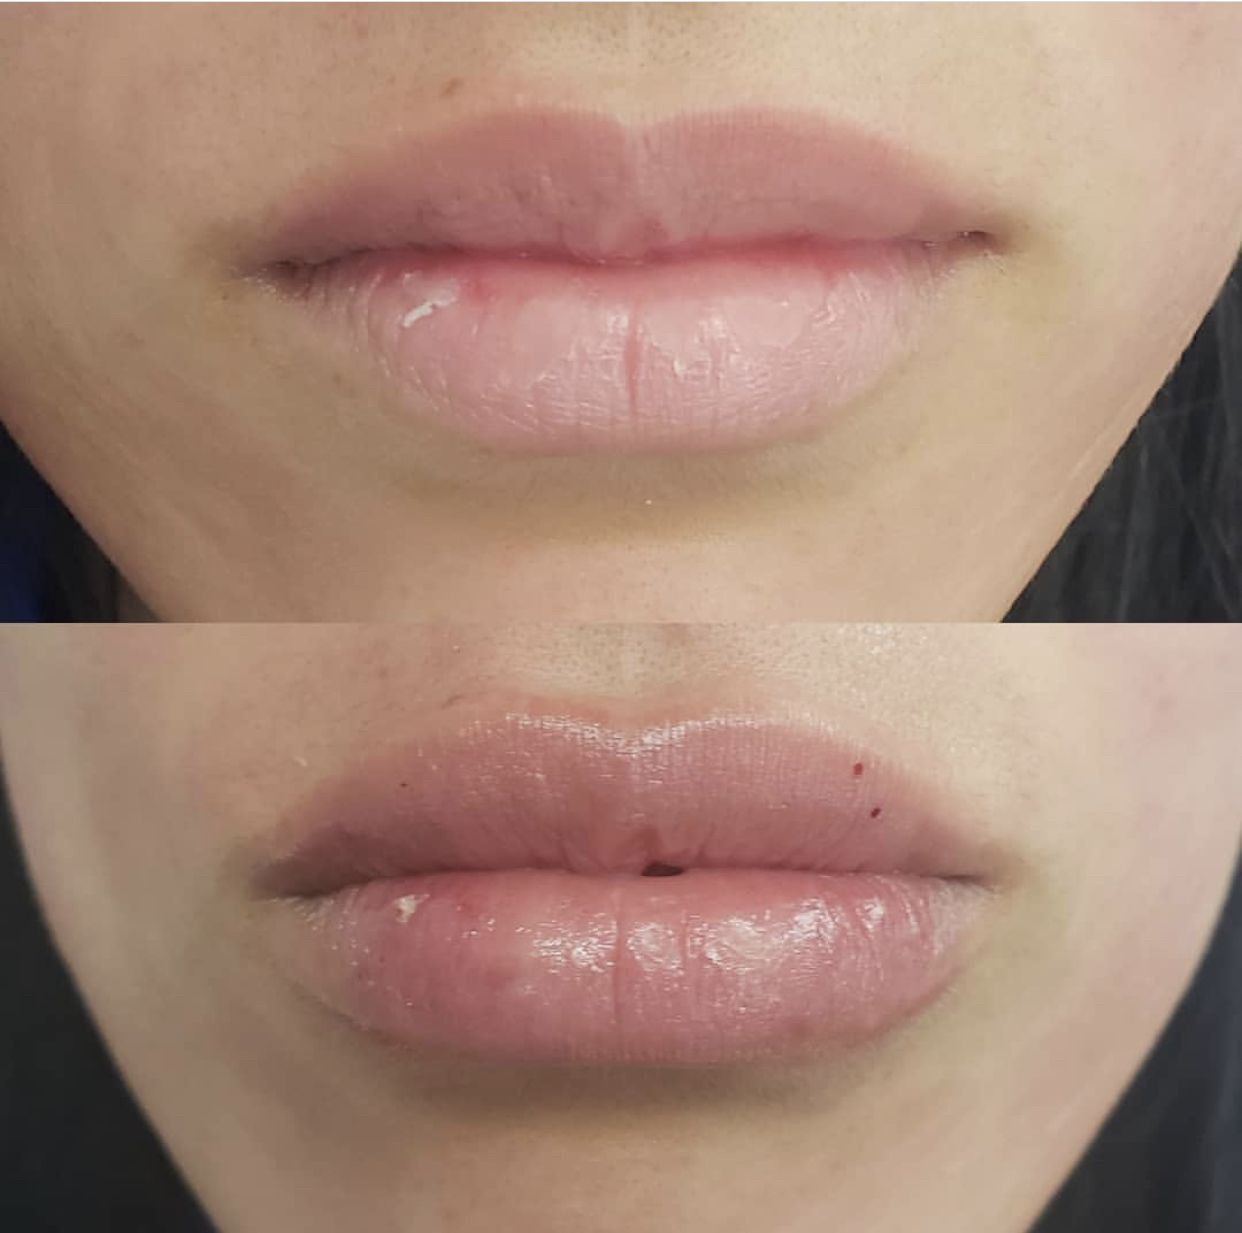 Happy with first time lip injections perfection Half syringe